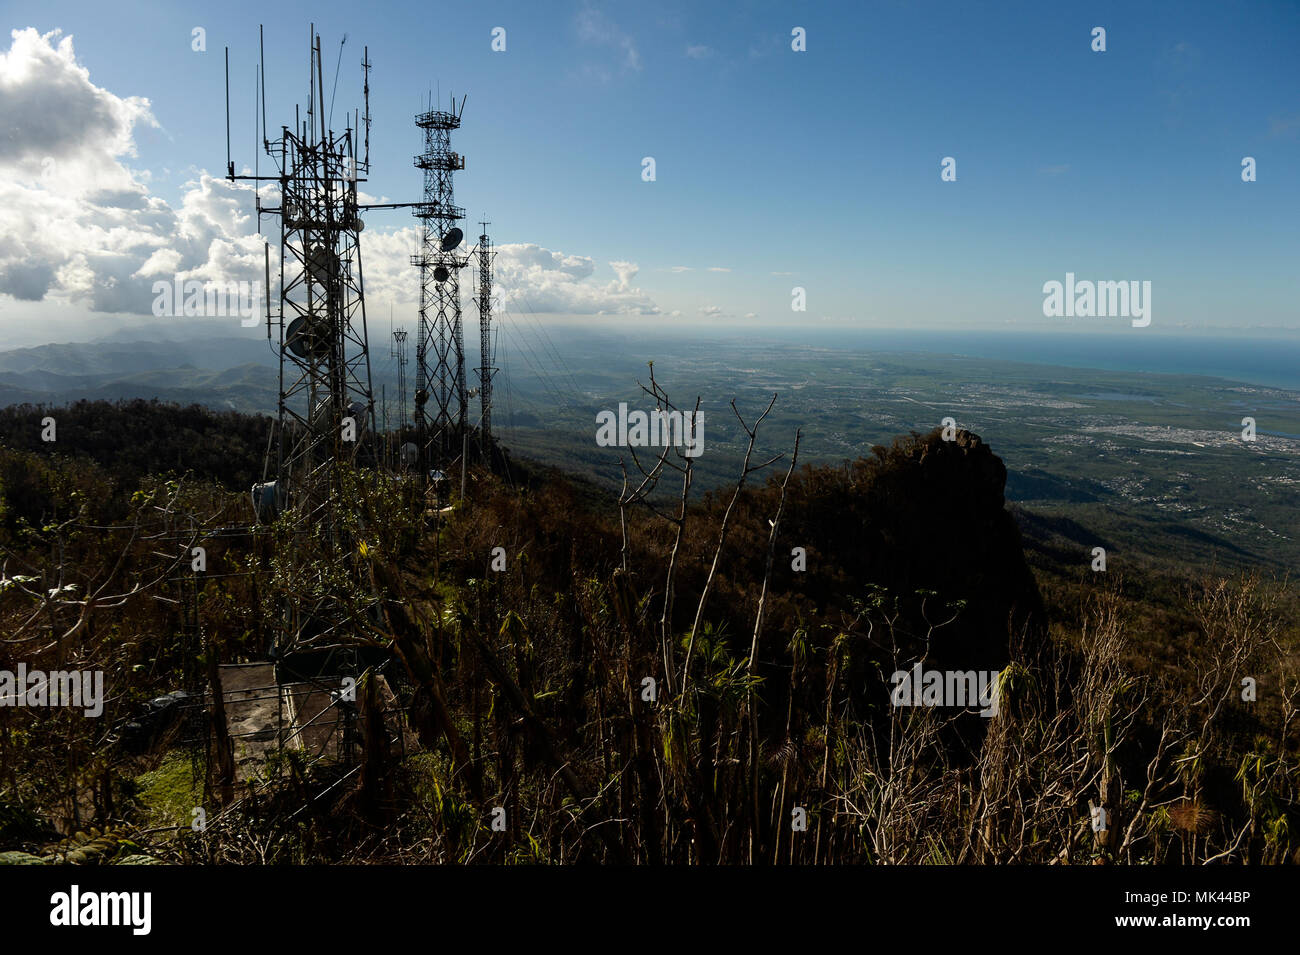 Airmen with the 85th Engineering Installation Squadron, Keesler Air Force Base, Miss., repair the cell towers on El Yunque Peak in El Yunque National Forest, Puerto Rico, Nov. 3, 2017 after Hurricane Maria devastated the tropical rainforest and damaged the communications towers. (U.S. Air Force photo by Master Sgt. Joshua L. DeMotts) Stock Photo